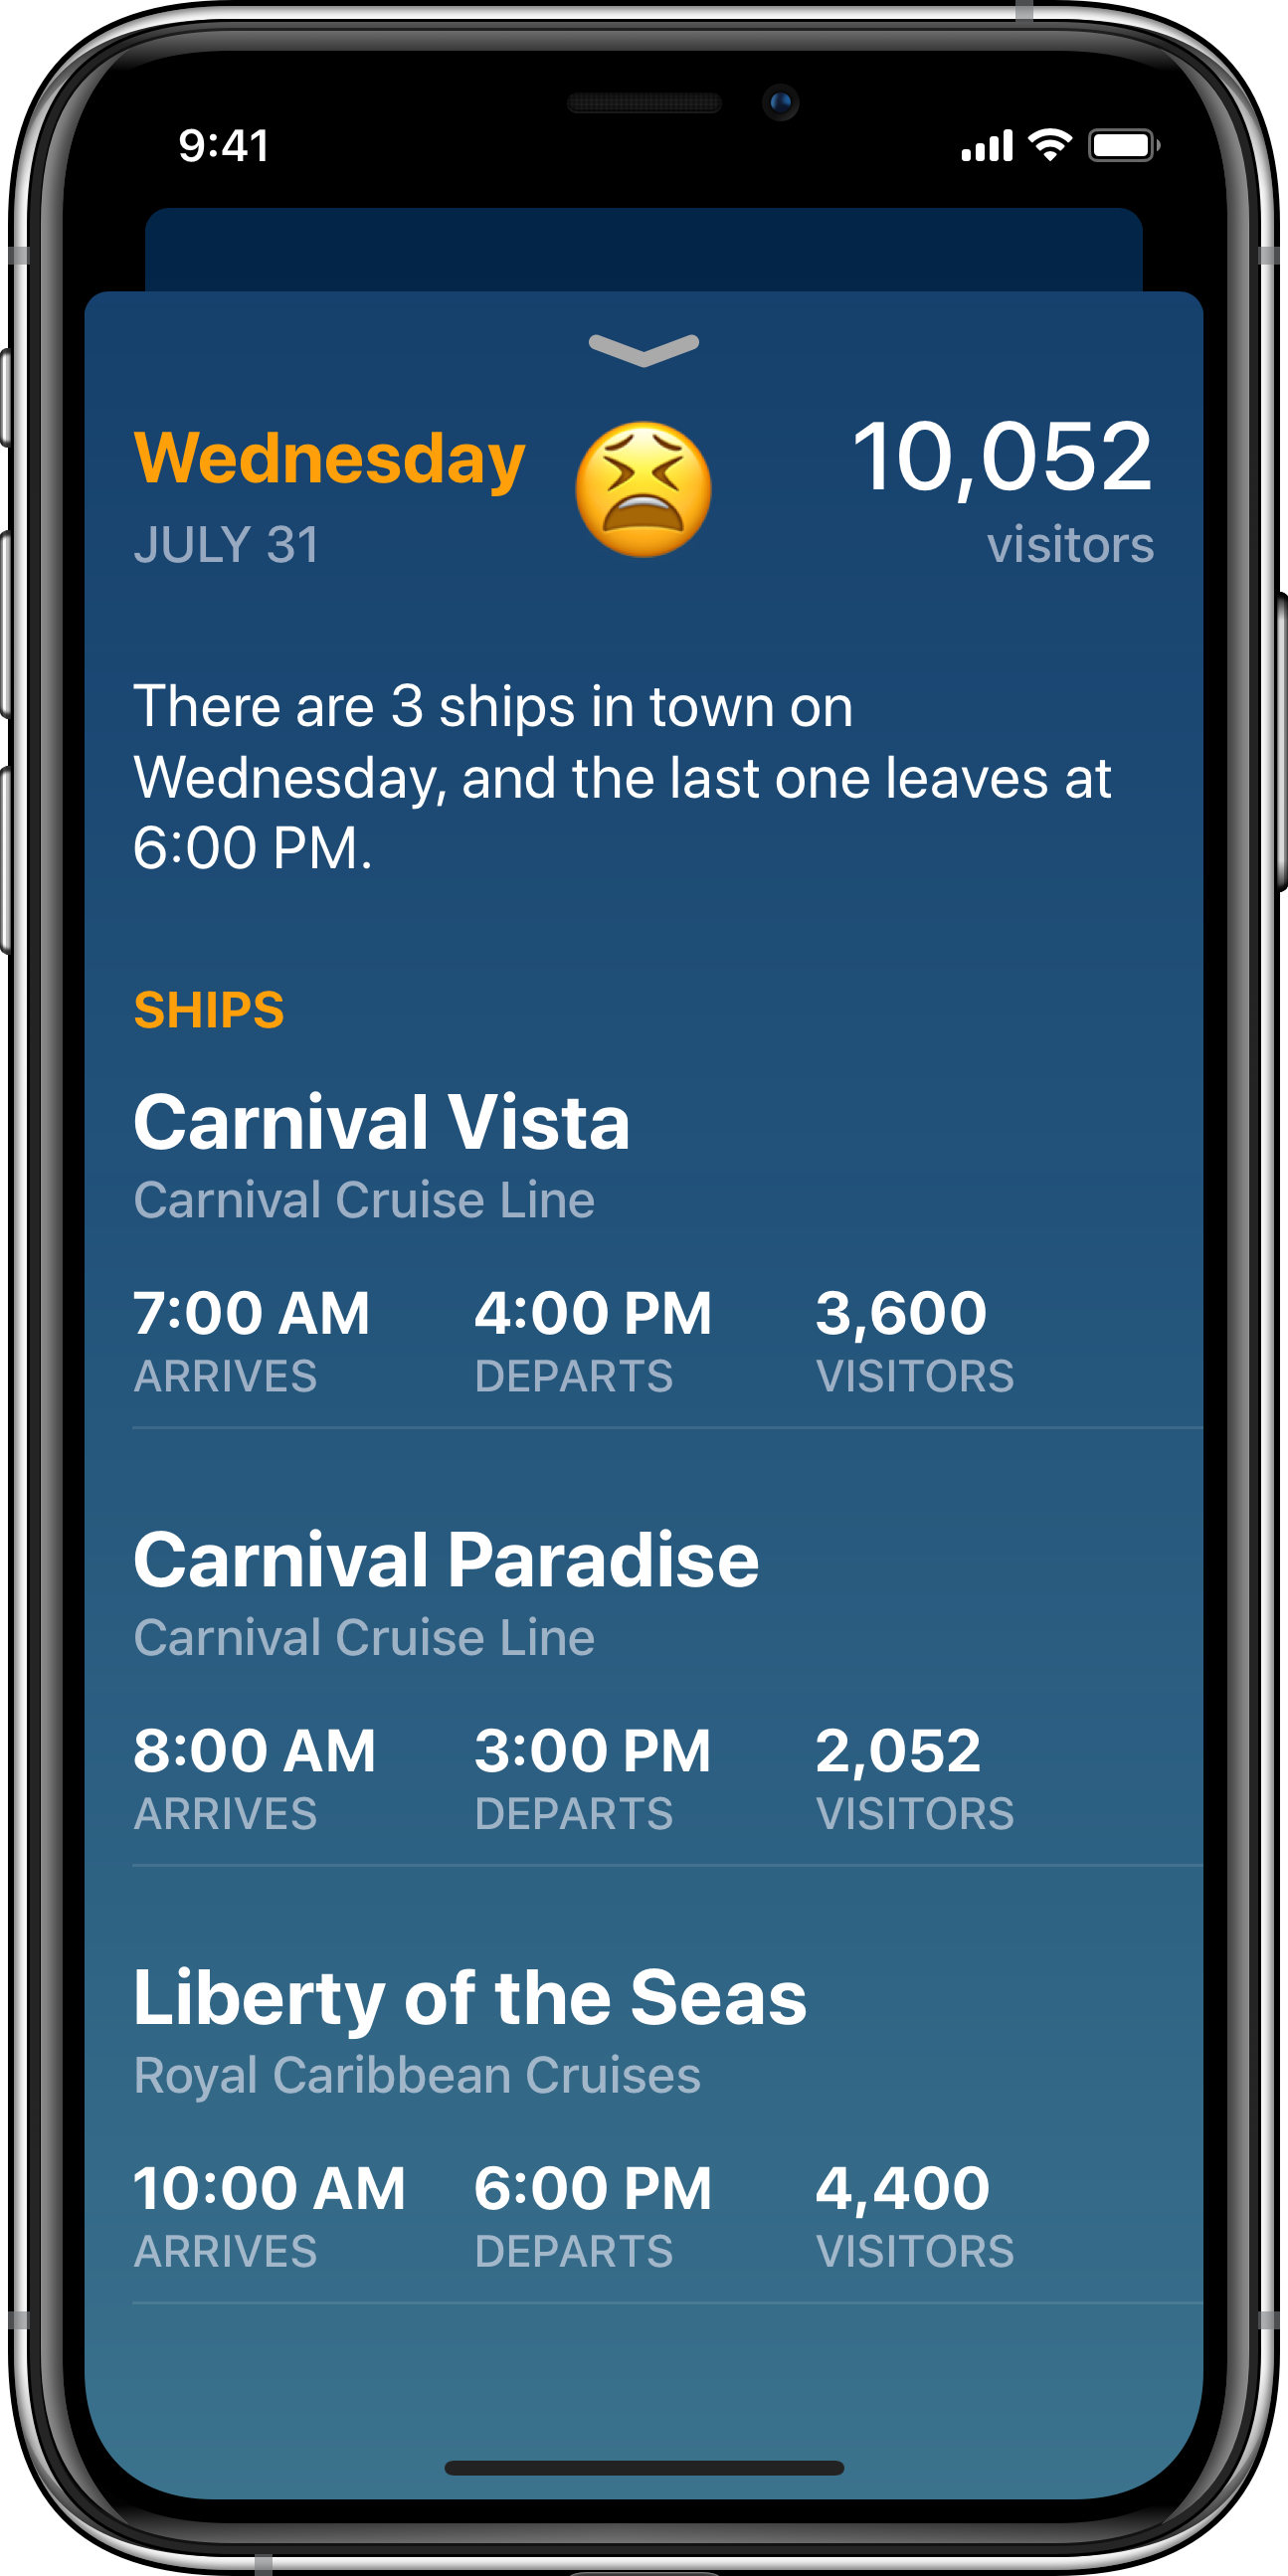 See more details about what ships are in town on a specific day.